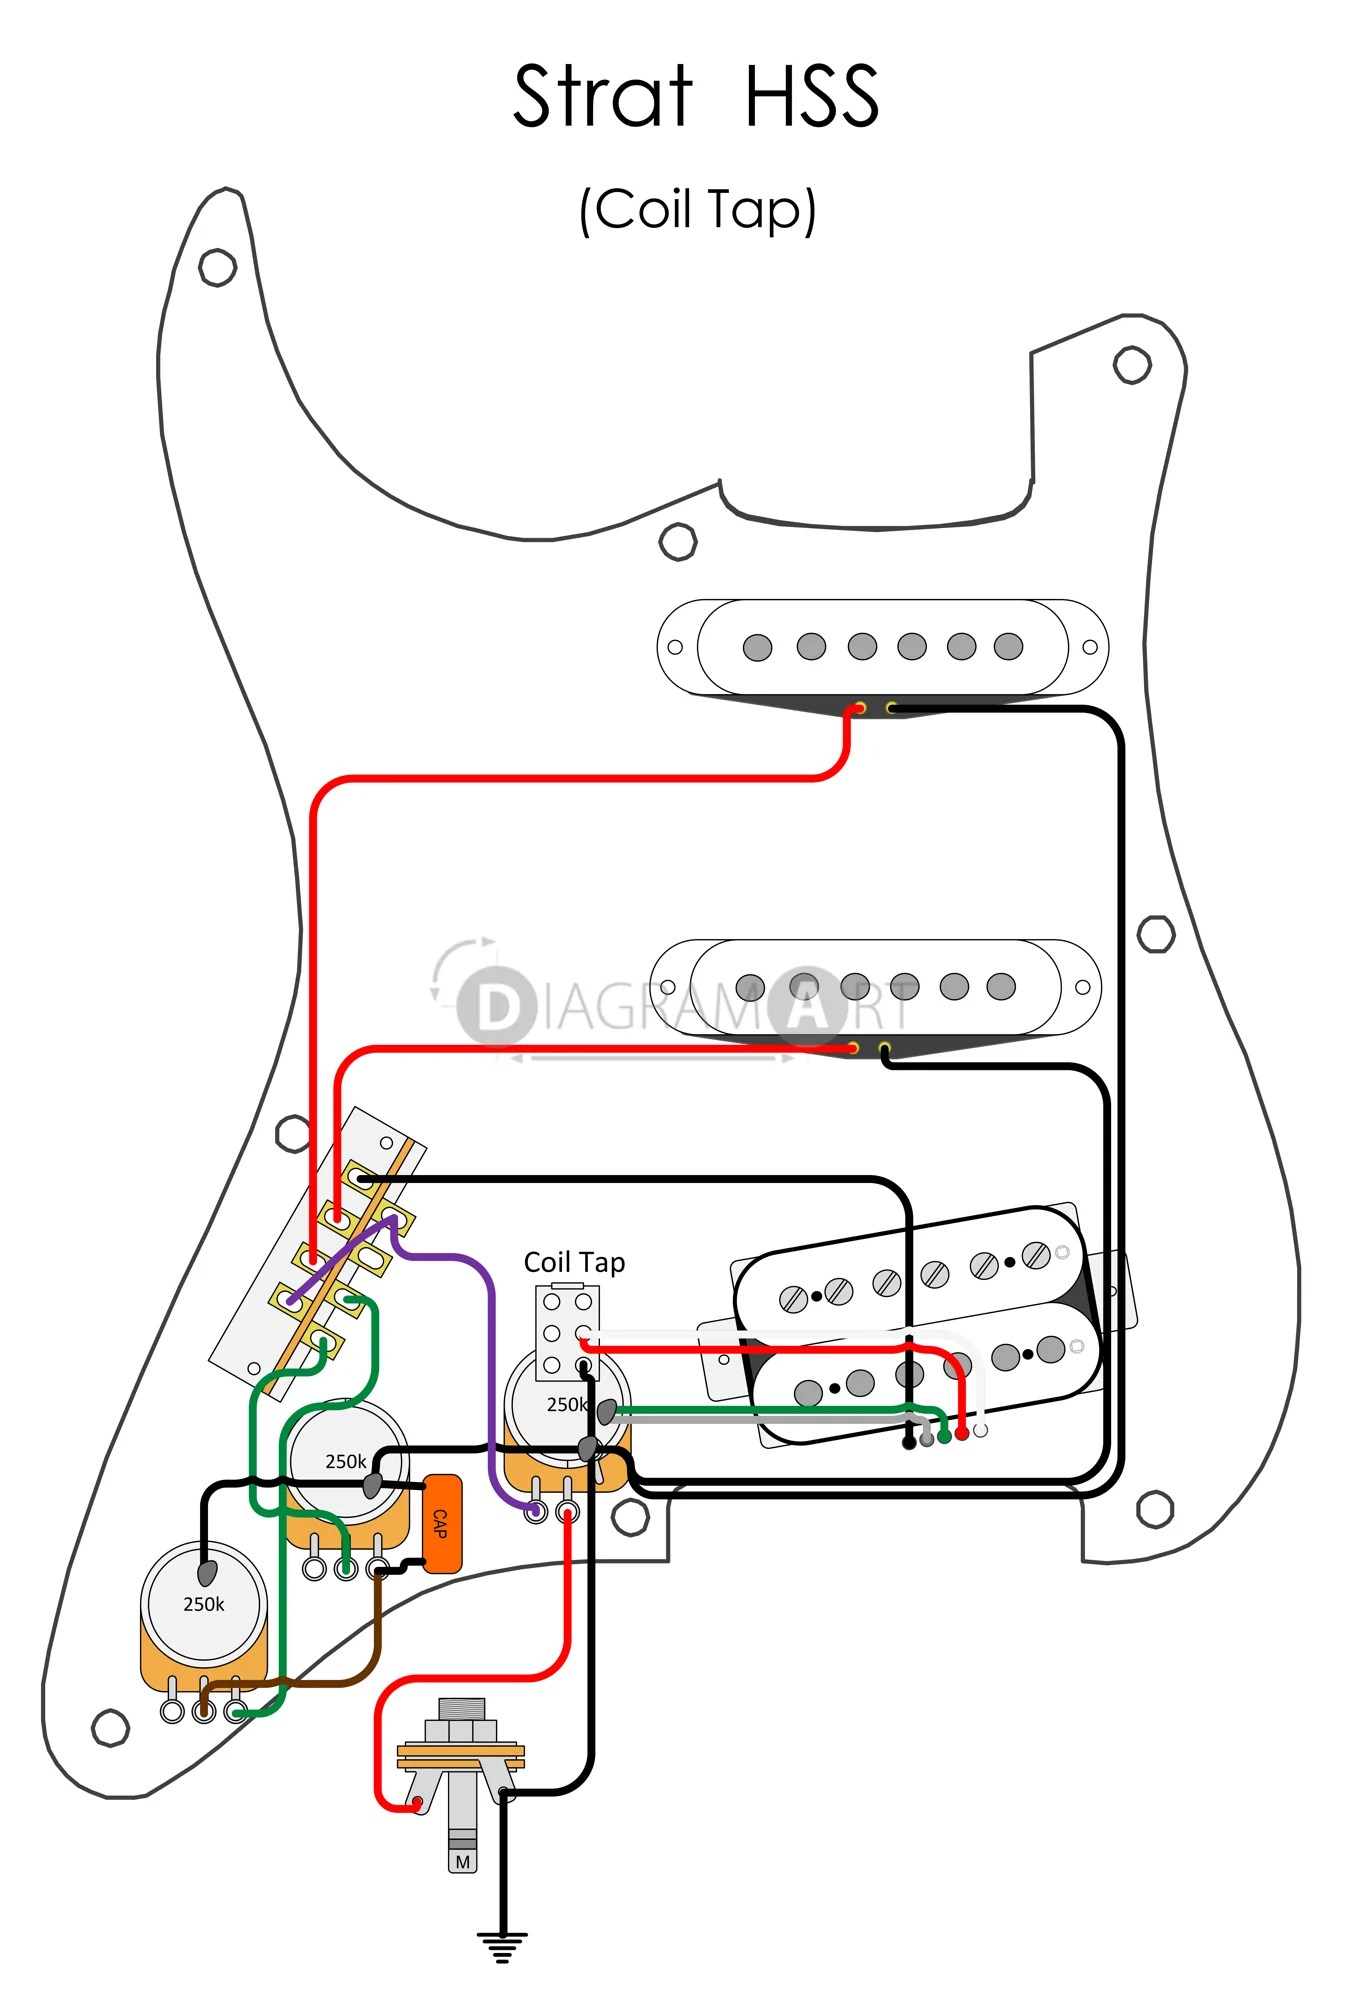 hight resolution of hss coil split wiring diagram automotive wiring diagrams seymour duncan coil split wiring diagrams coil split